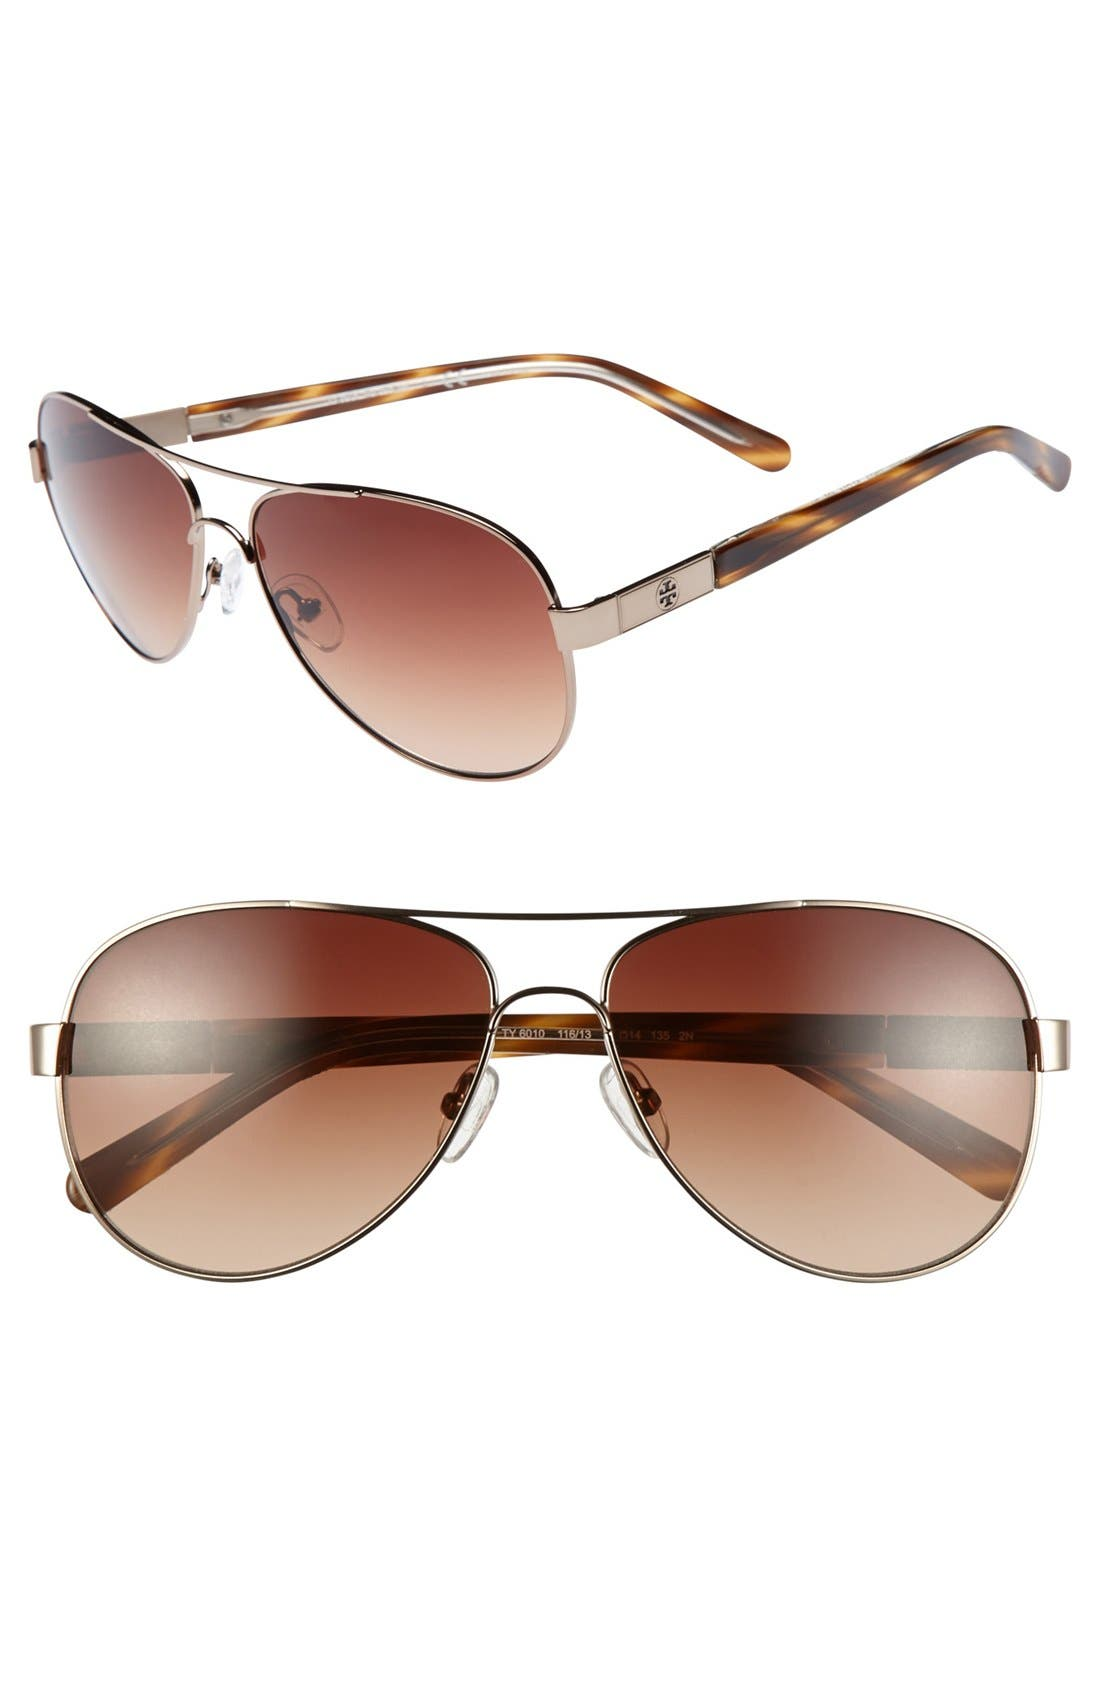 Alternate Image 1 Selected - Tory Burch 57mm Metal Aviator Sunglasses with Resin Temples